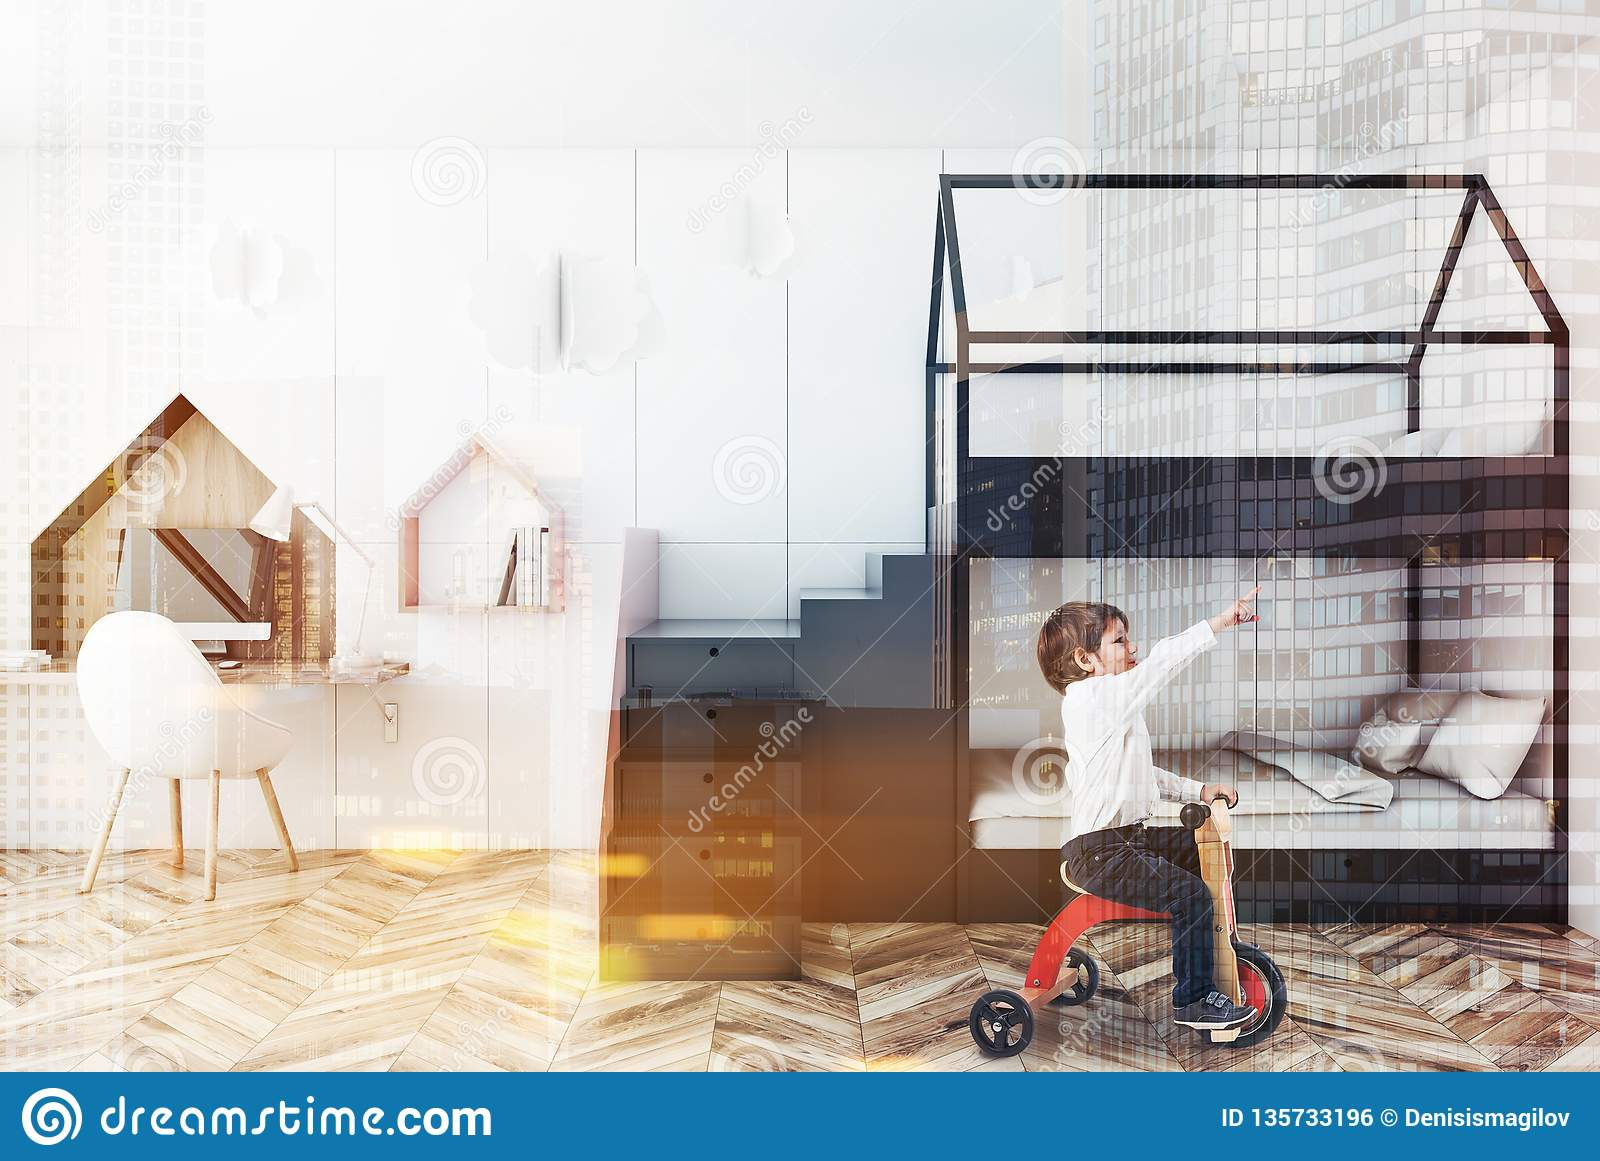 Picture of: White Kids Bedroom Interior Bunk Bed Boy Stock Photo Image Of Care Colorful 135733196